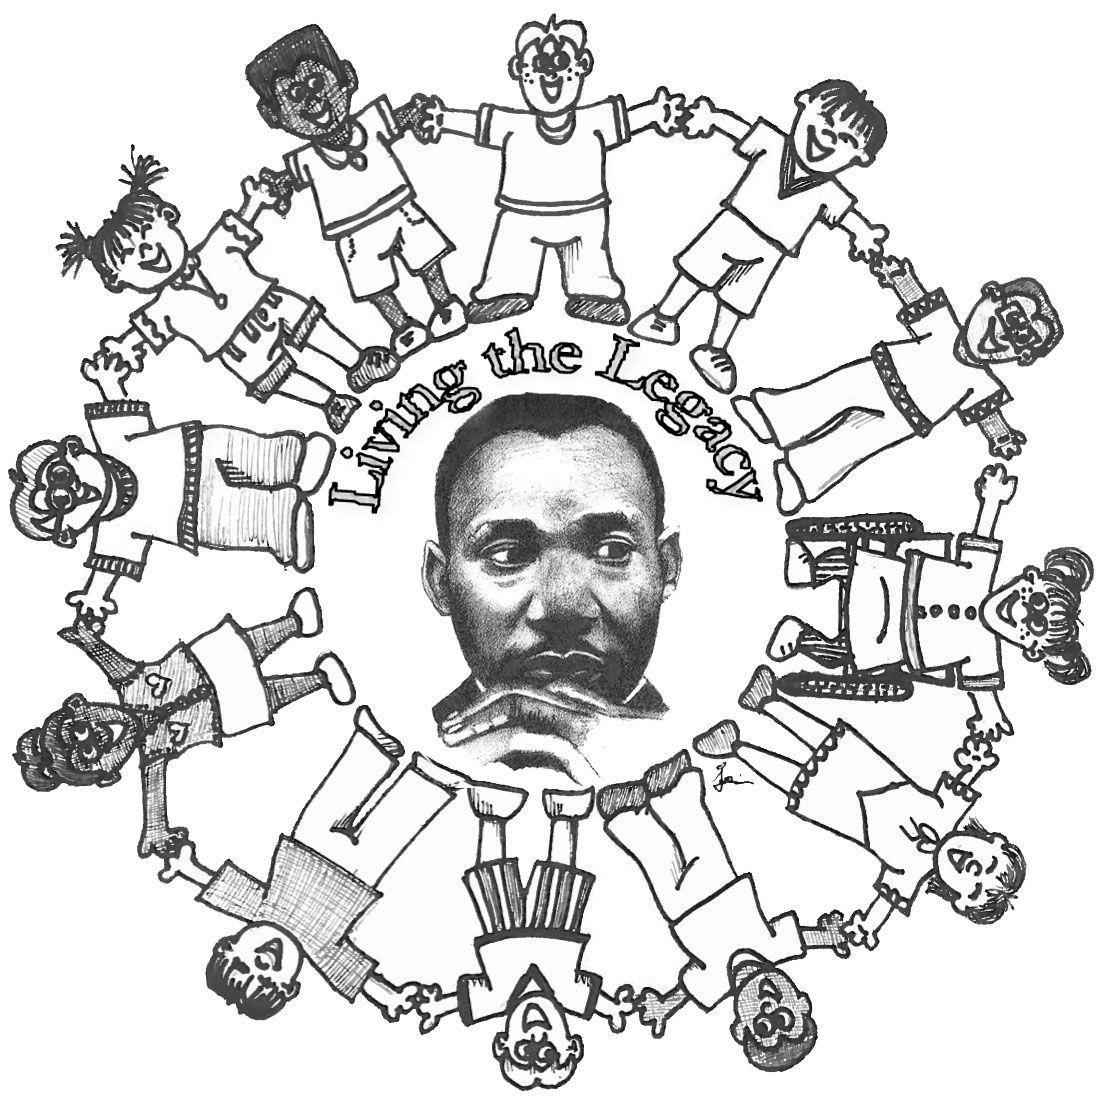 martin luther king coloring page martin luther king jr coloring pages coloring home martin page king luther coloring